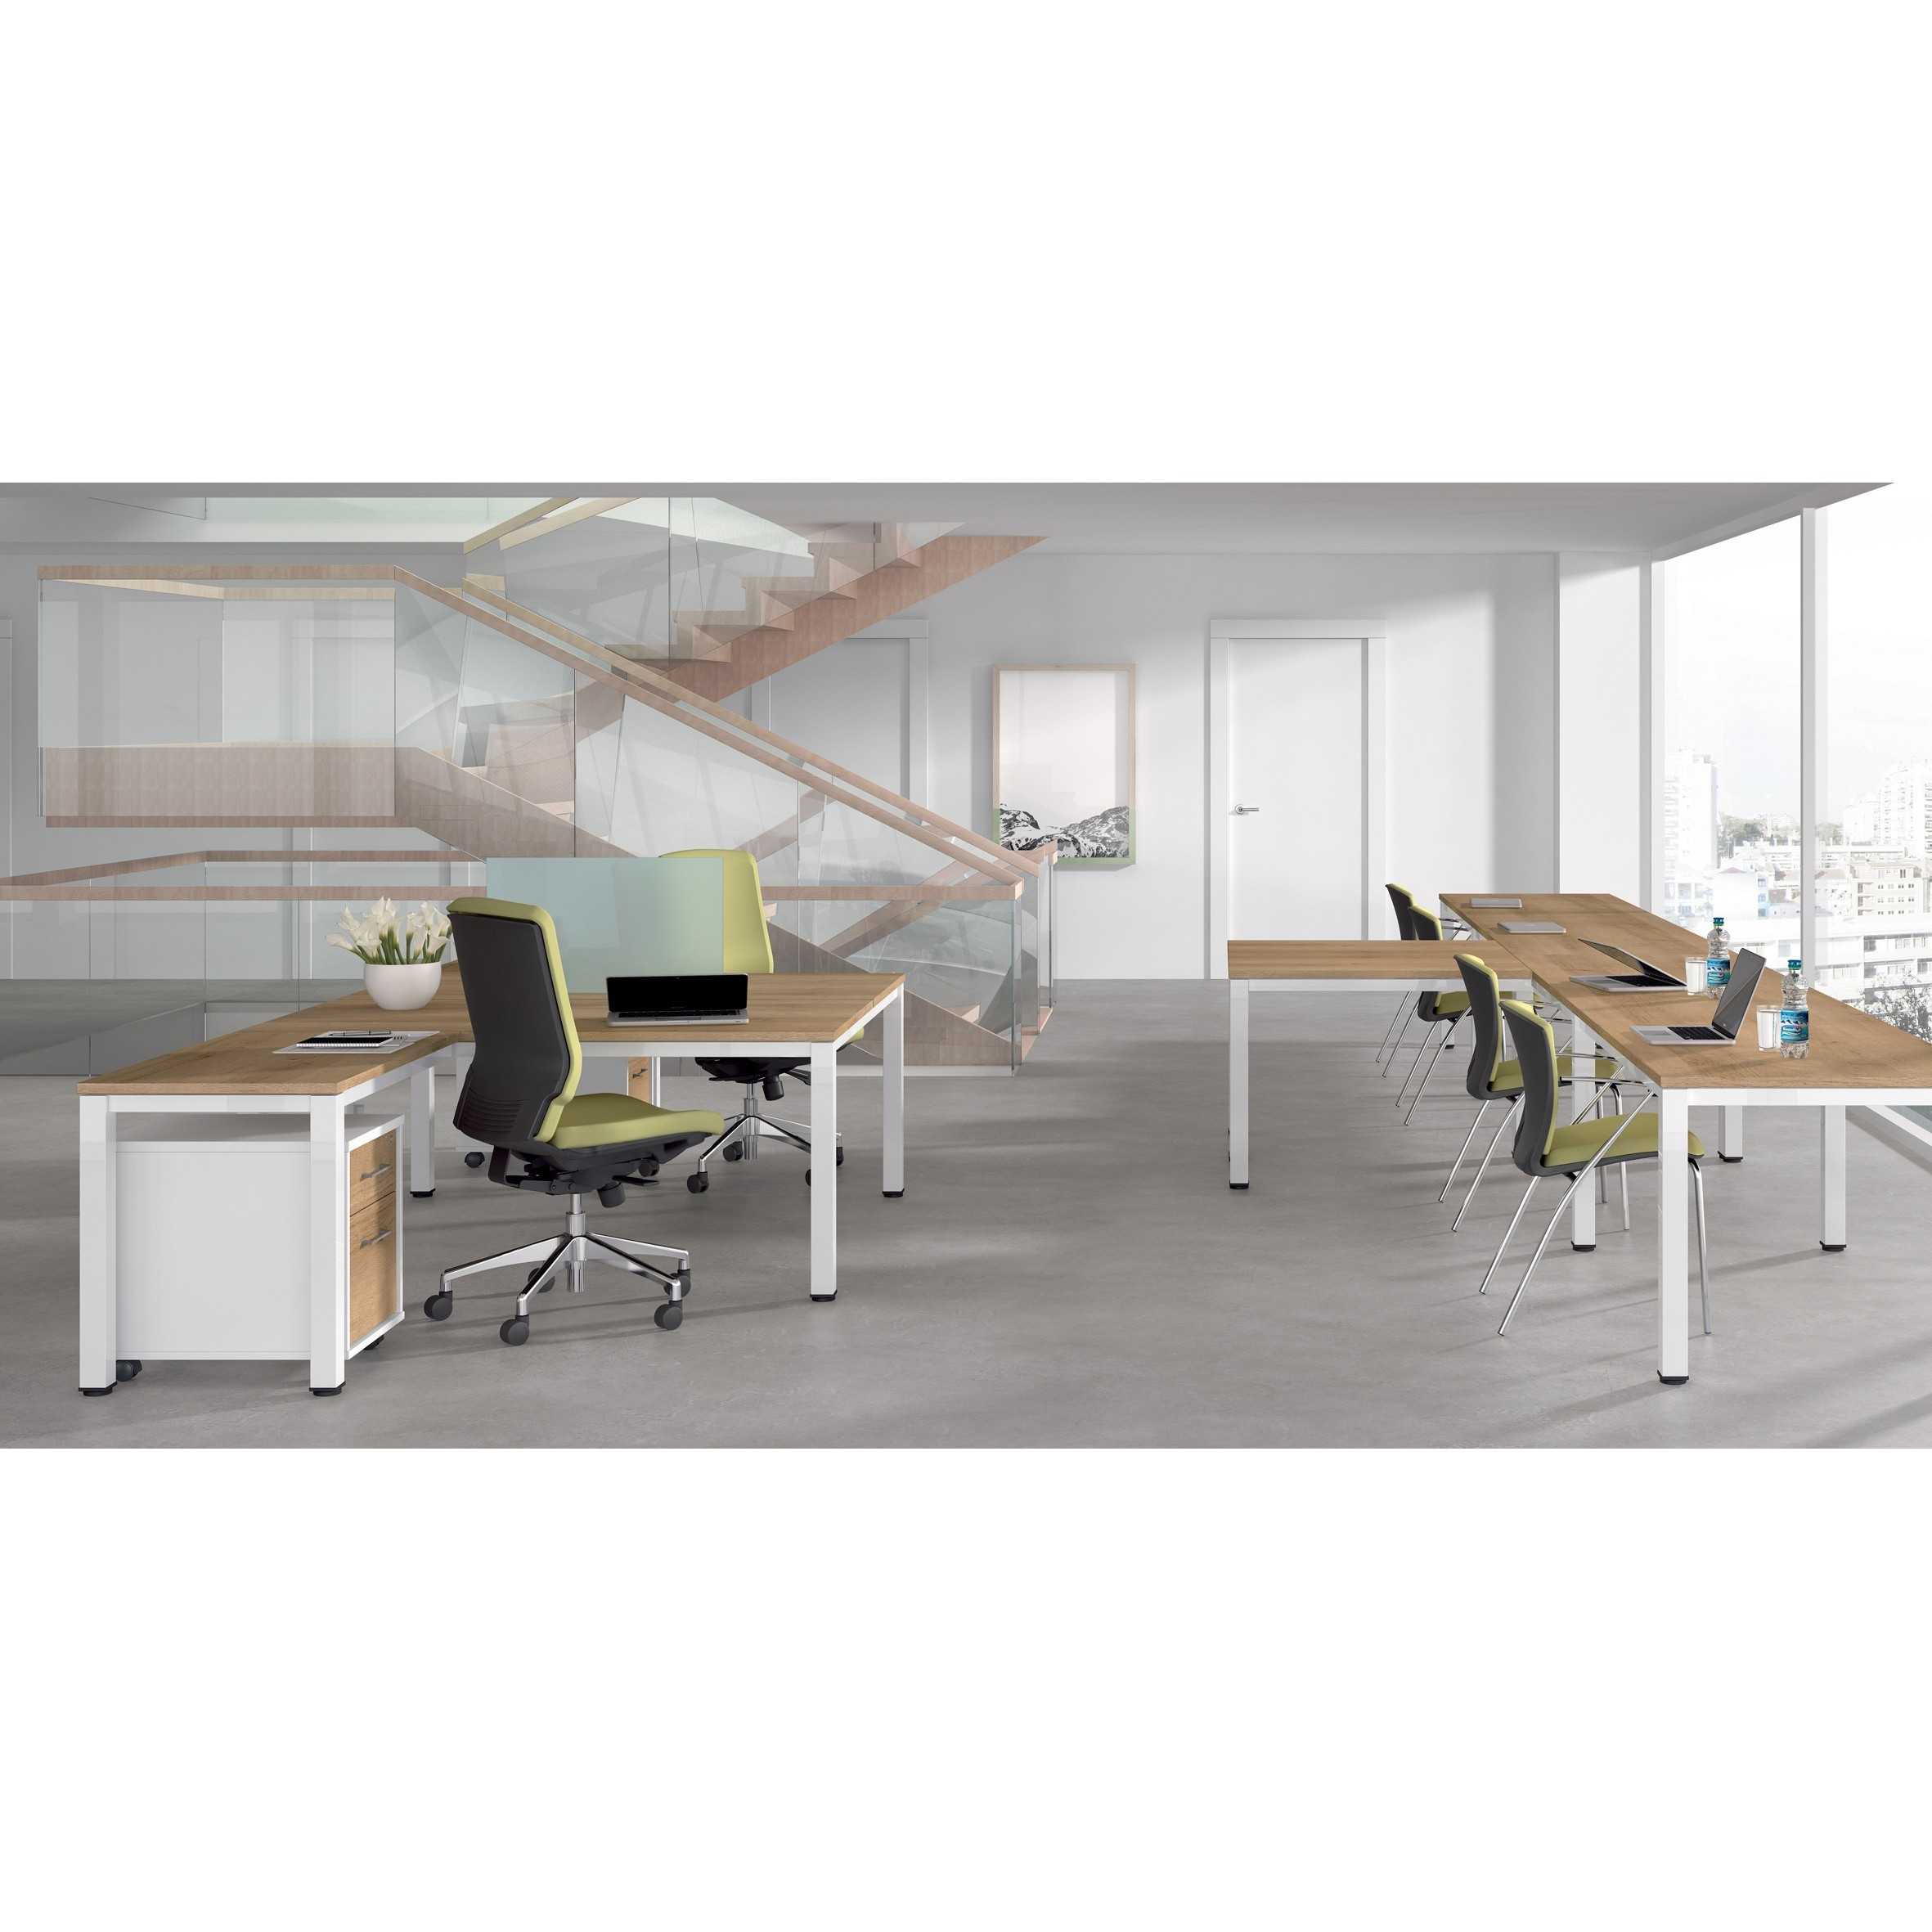 TABLE OFFICE 'S EXECUTIVE SERIES 200X100 WHITE/GREY